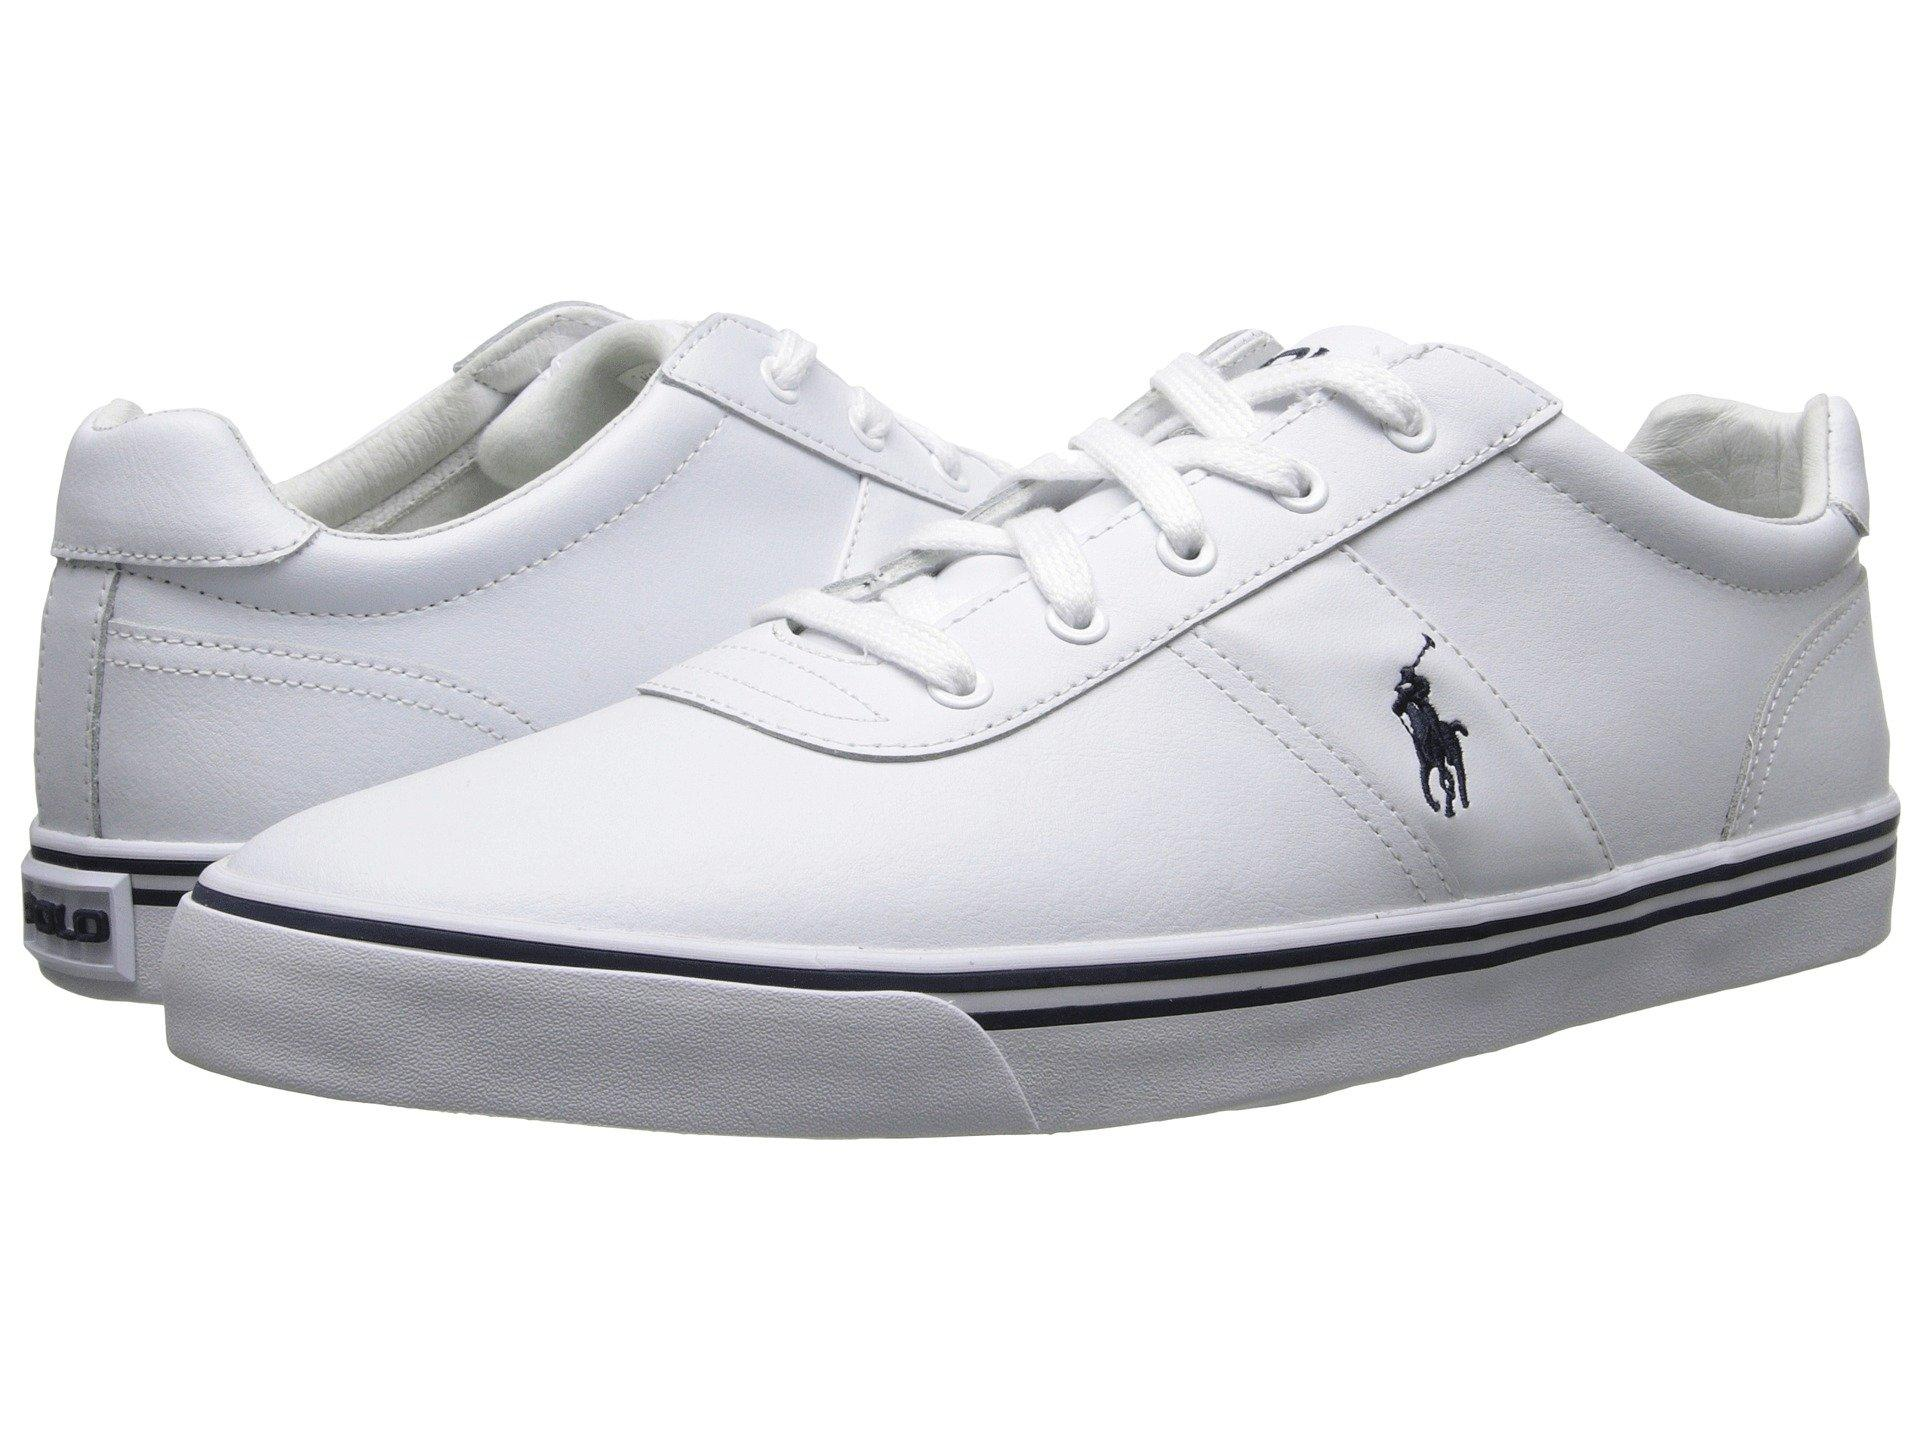 Polo Ralph Lauren Hanford Leather In White Leather